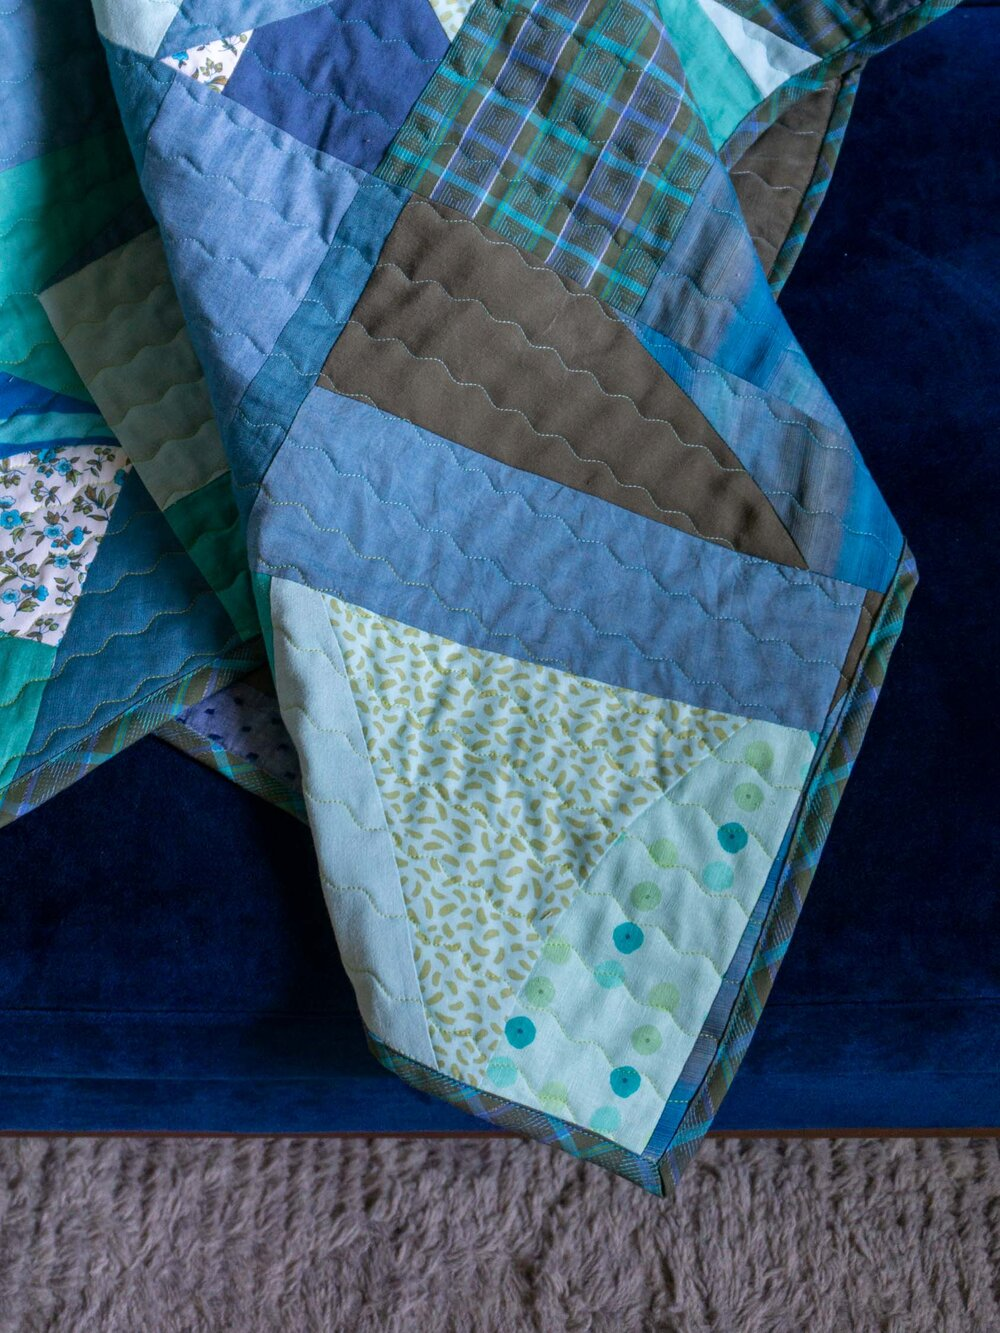 Green Waves Improvisational Quilt Made with Garment Fabric Scraps